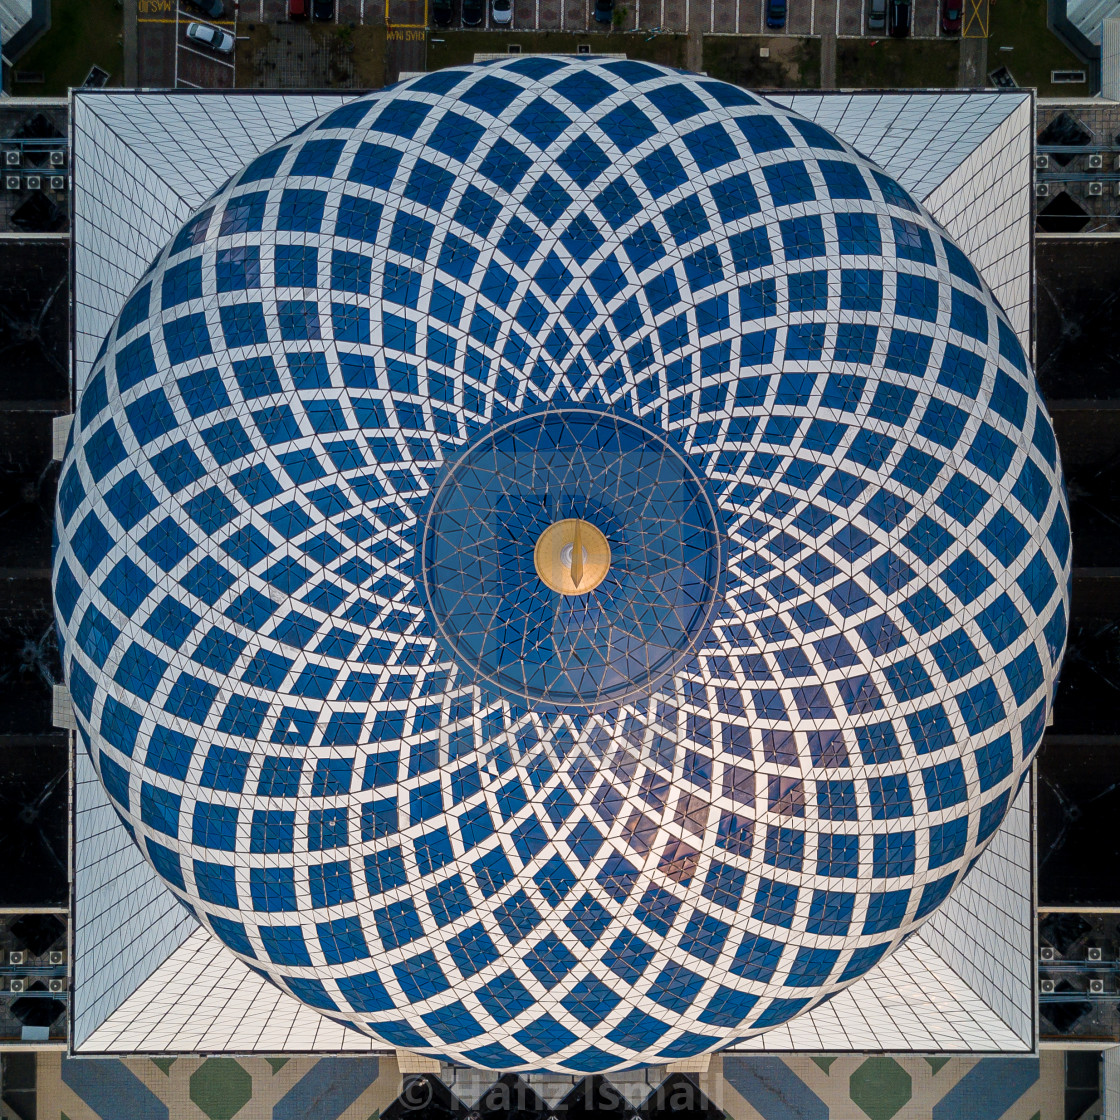 """Aerial Photo - top down view/bird's eye view of a mosque's dome showing the intricate pattern."" stock image"